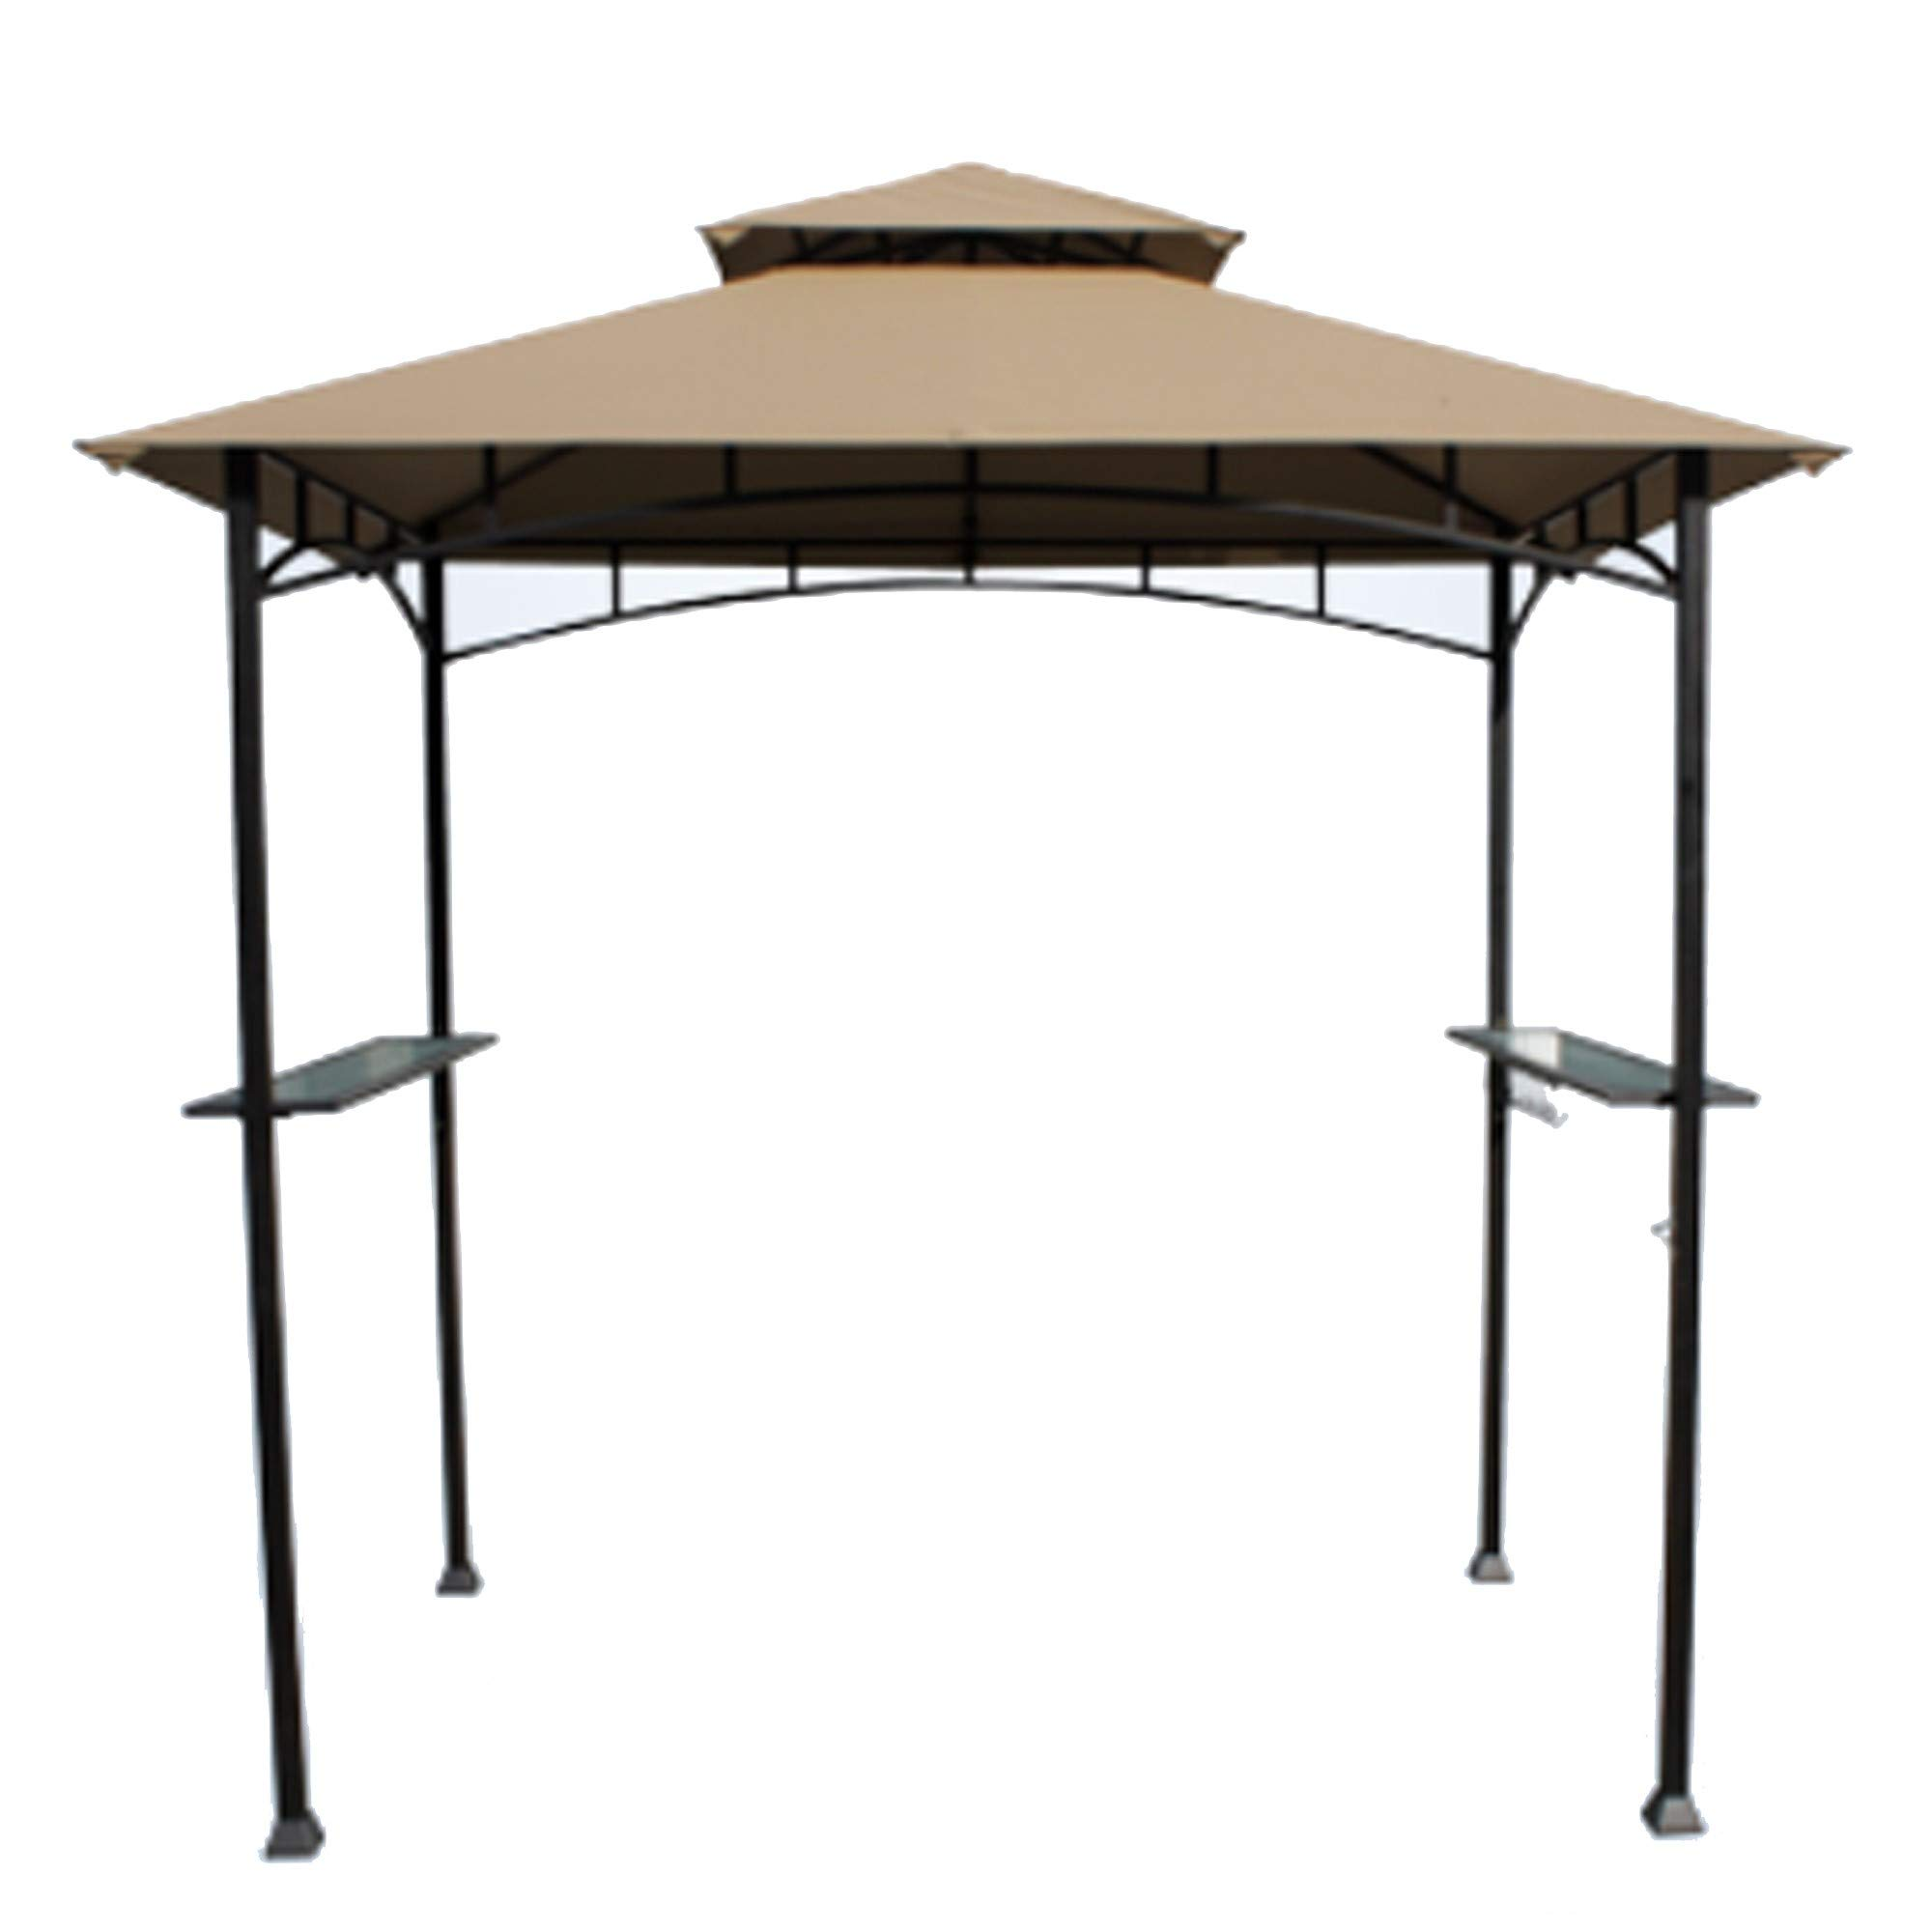 Garden Winds Replacement Canopy Top Cover for The Aldi Gardenline Grill Gazebo - Standard 350 (Will not fit Any Other Model) by Garden Winds